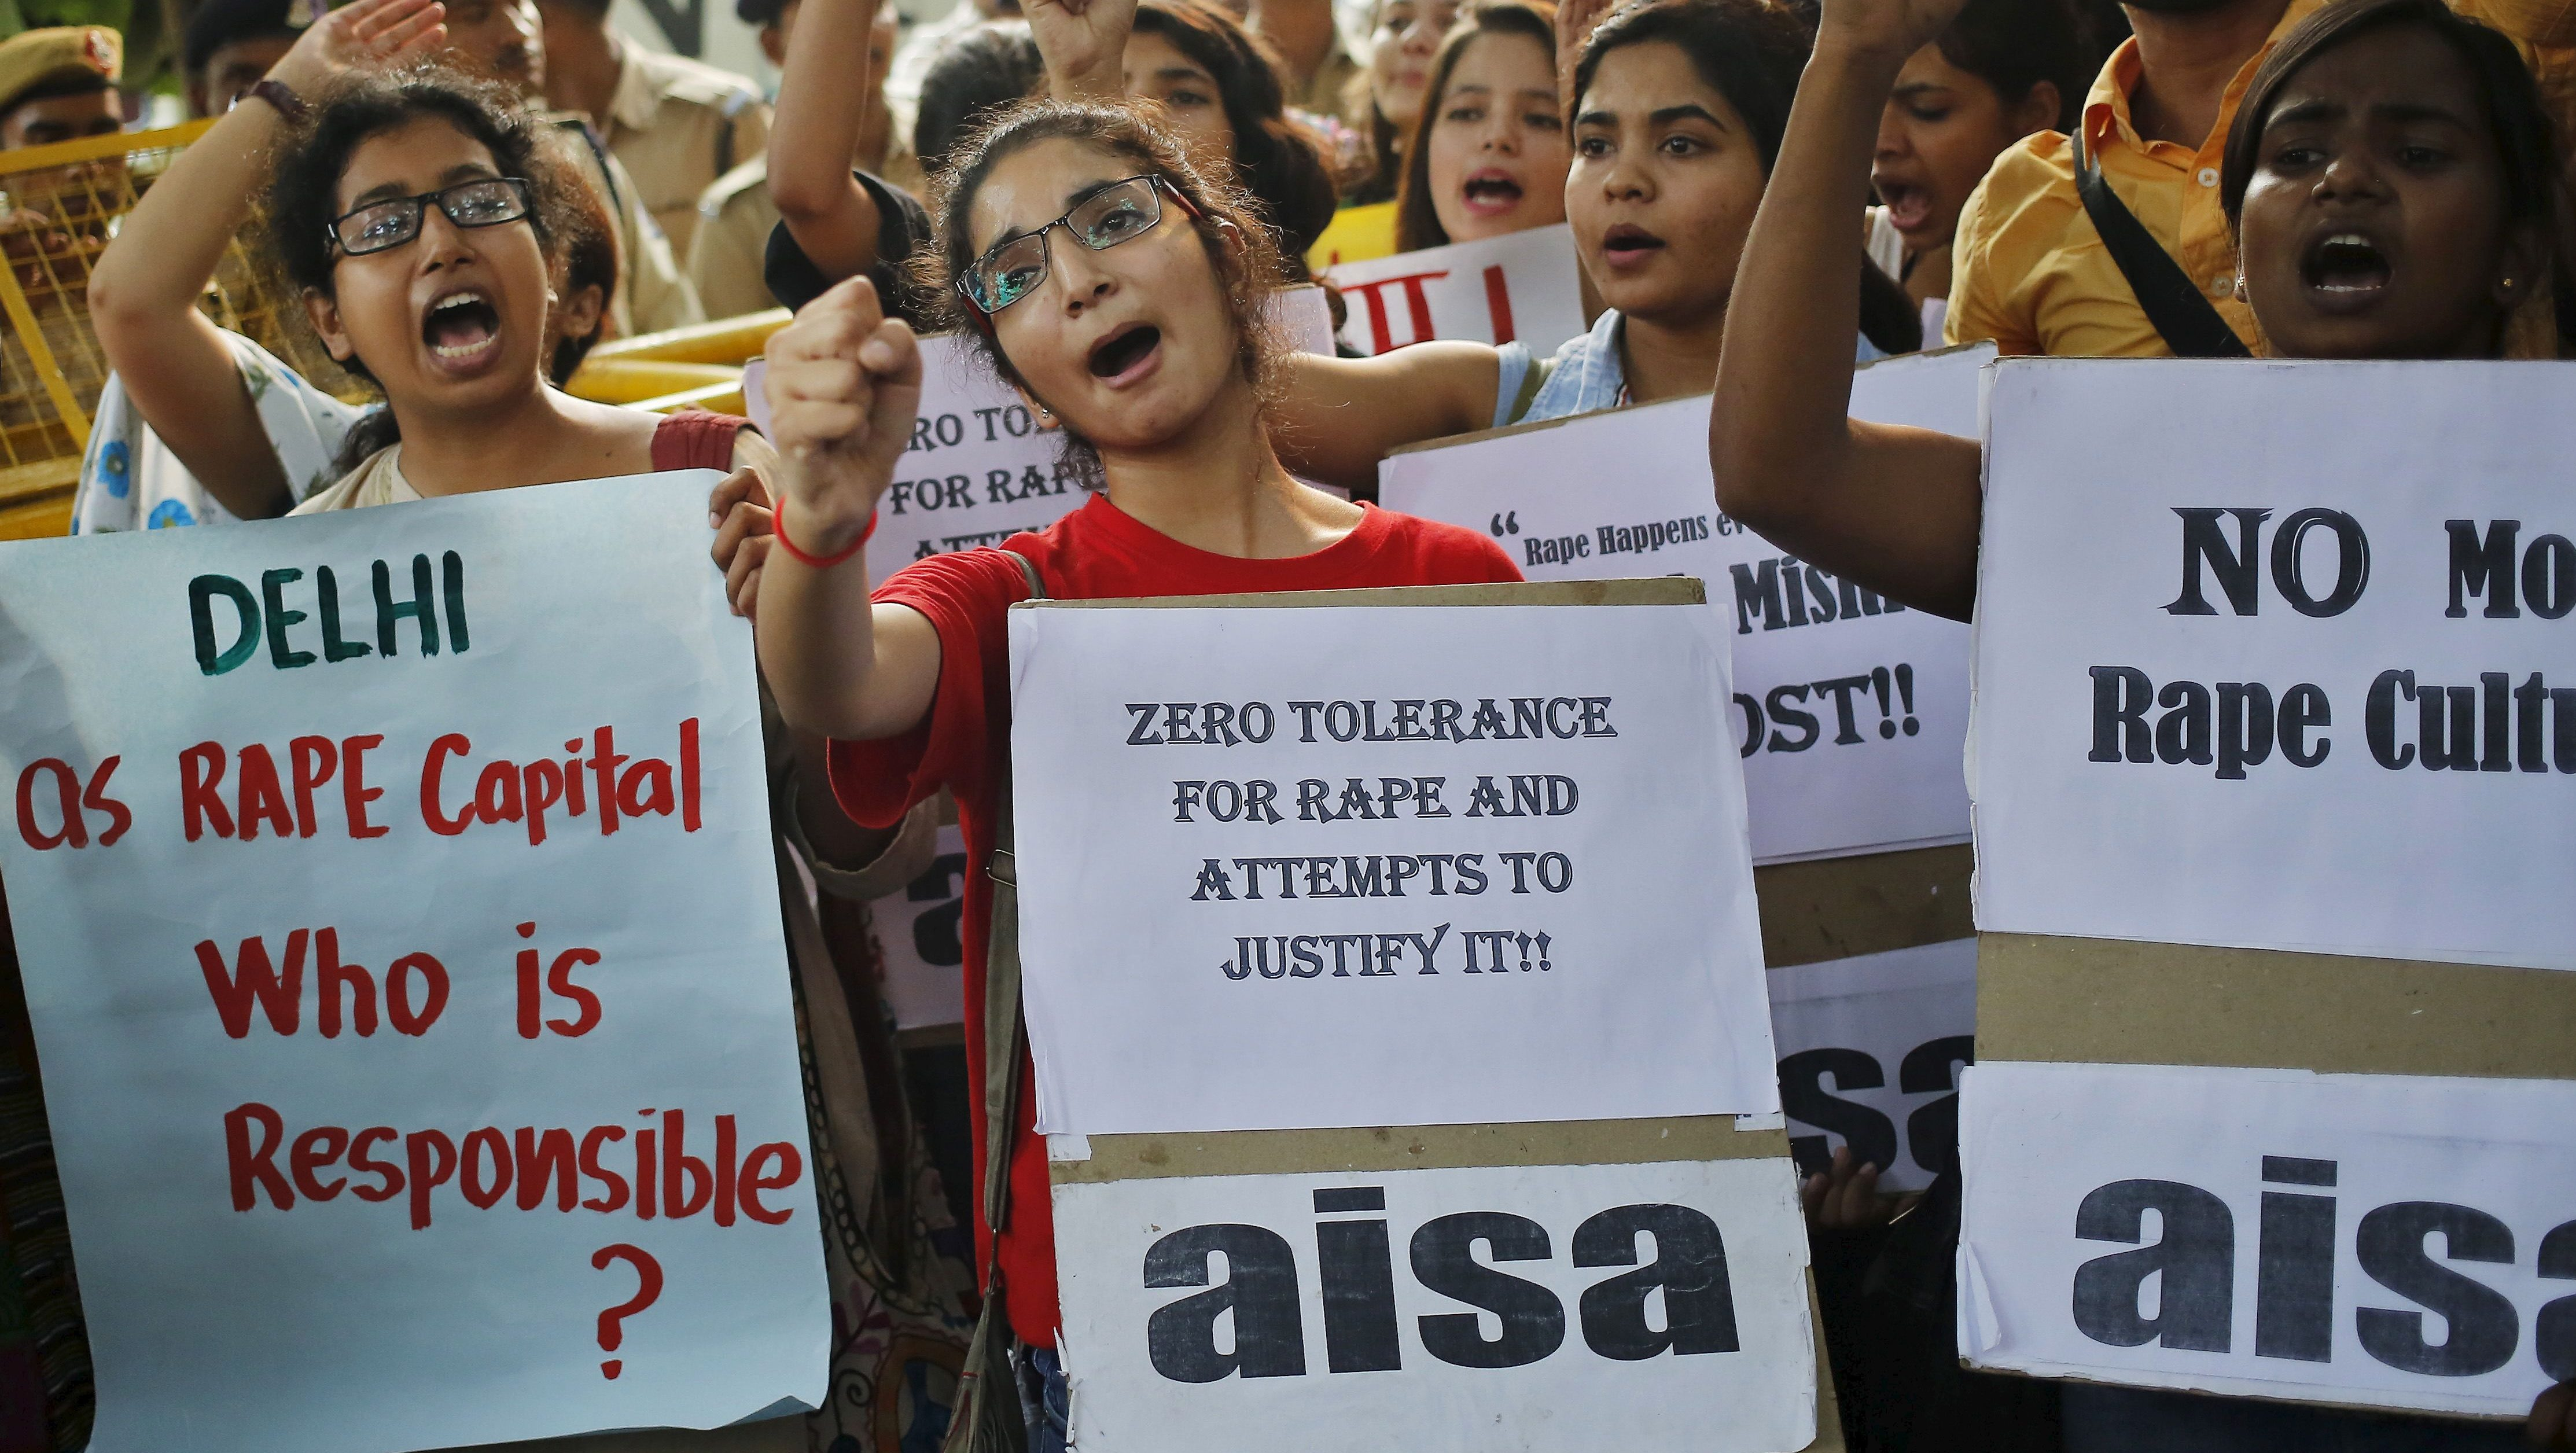 Members of All India Students Association (AISA) shout slogans as they hold placards during a protest outside police headquarters in New Delhi, India, October 18, 2015. Dozens of AISA members on Sunday held a protest against the recent rapes in the capital, the demonstrators said.